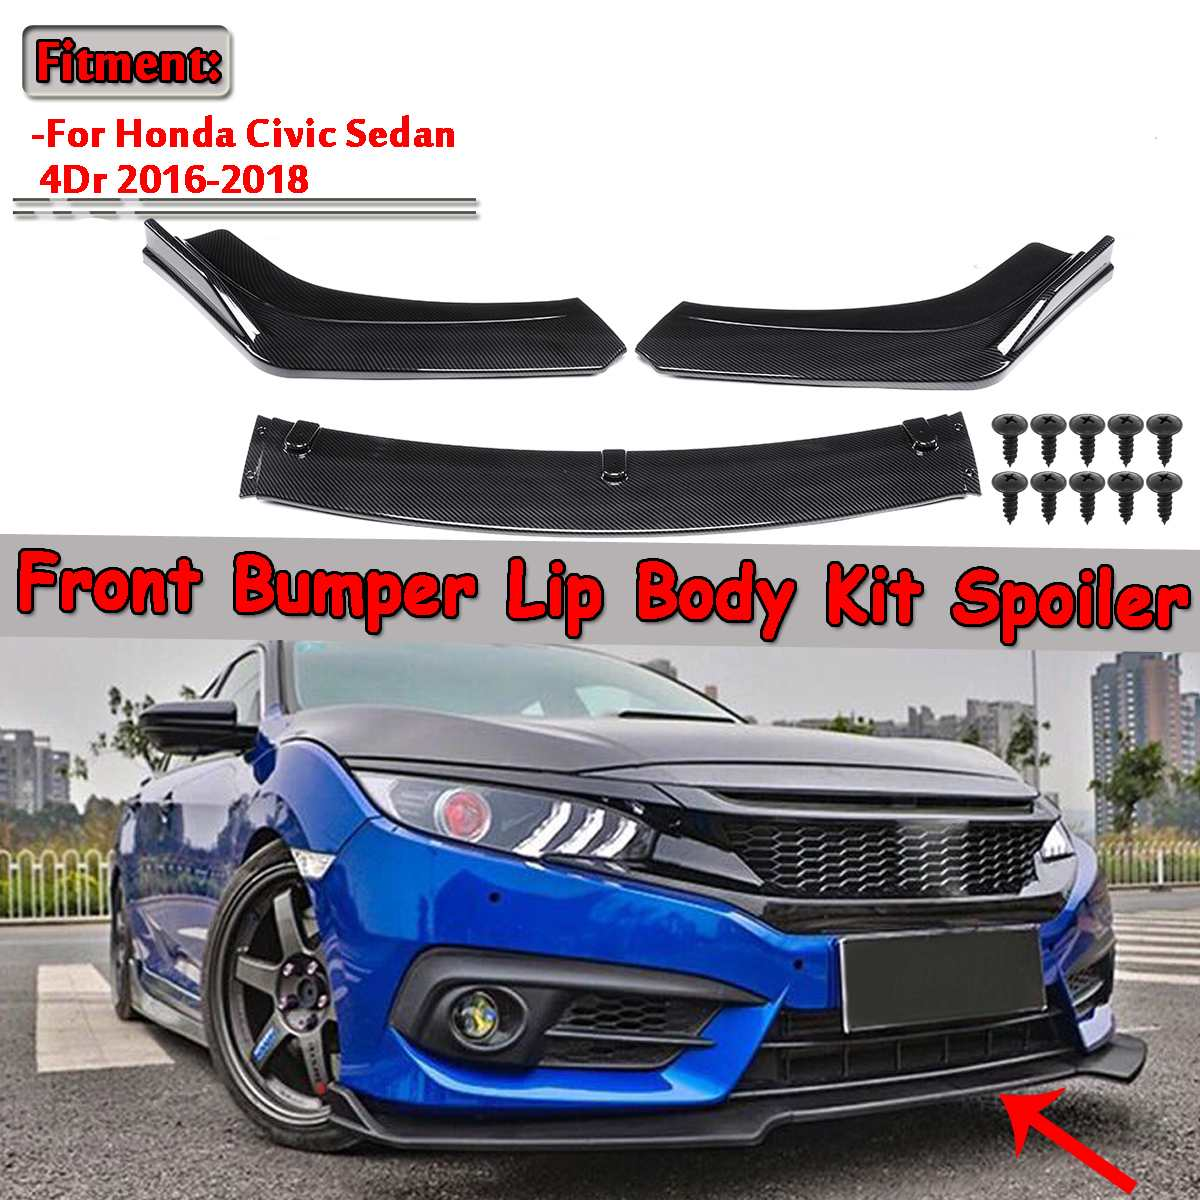 3 Pezzo in Fibra di Carbonio Look/Black Car Anteriore Inferiore Del Paraurti Lip Diffusore Spoiler Body Kit per Honda Civic berlina 4Dr 2016 2017 2018